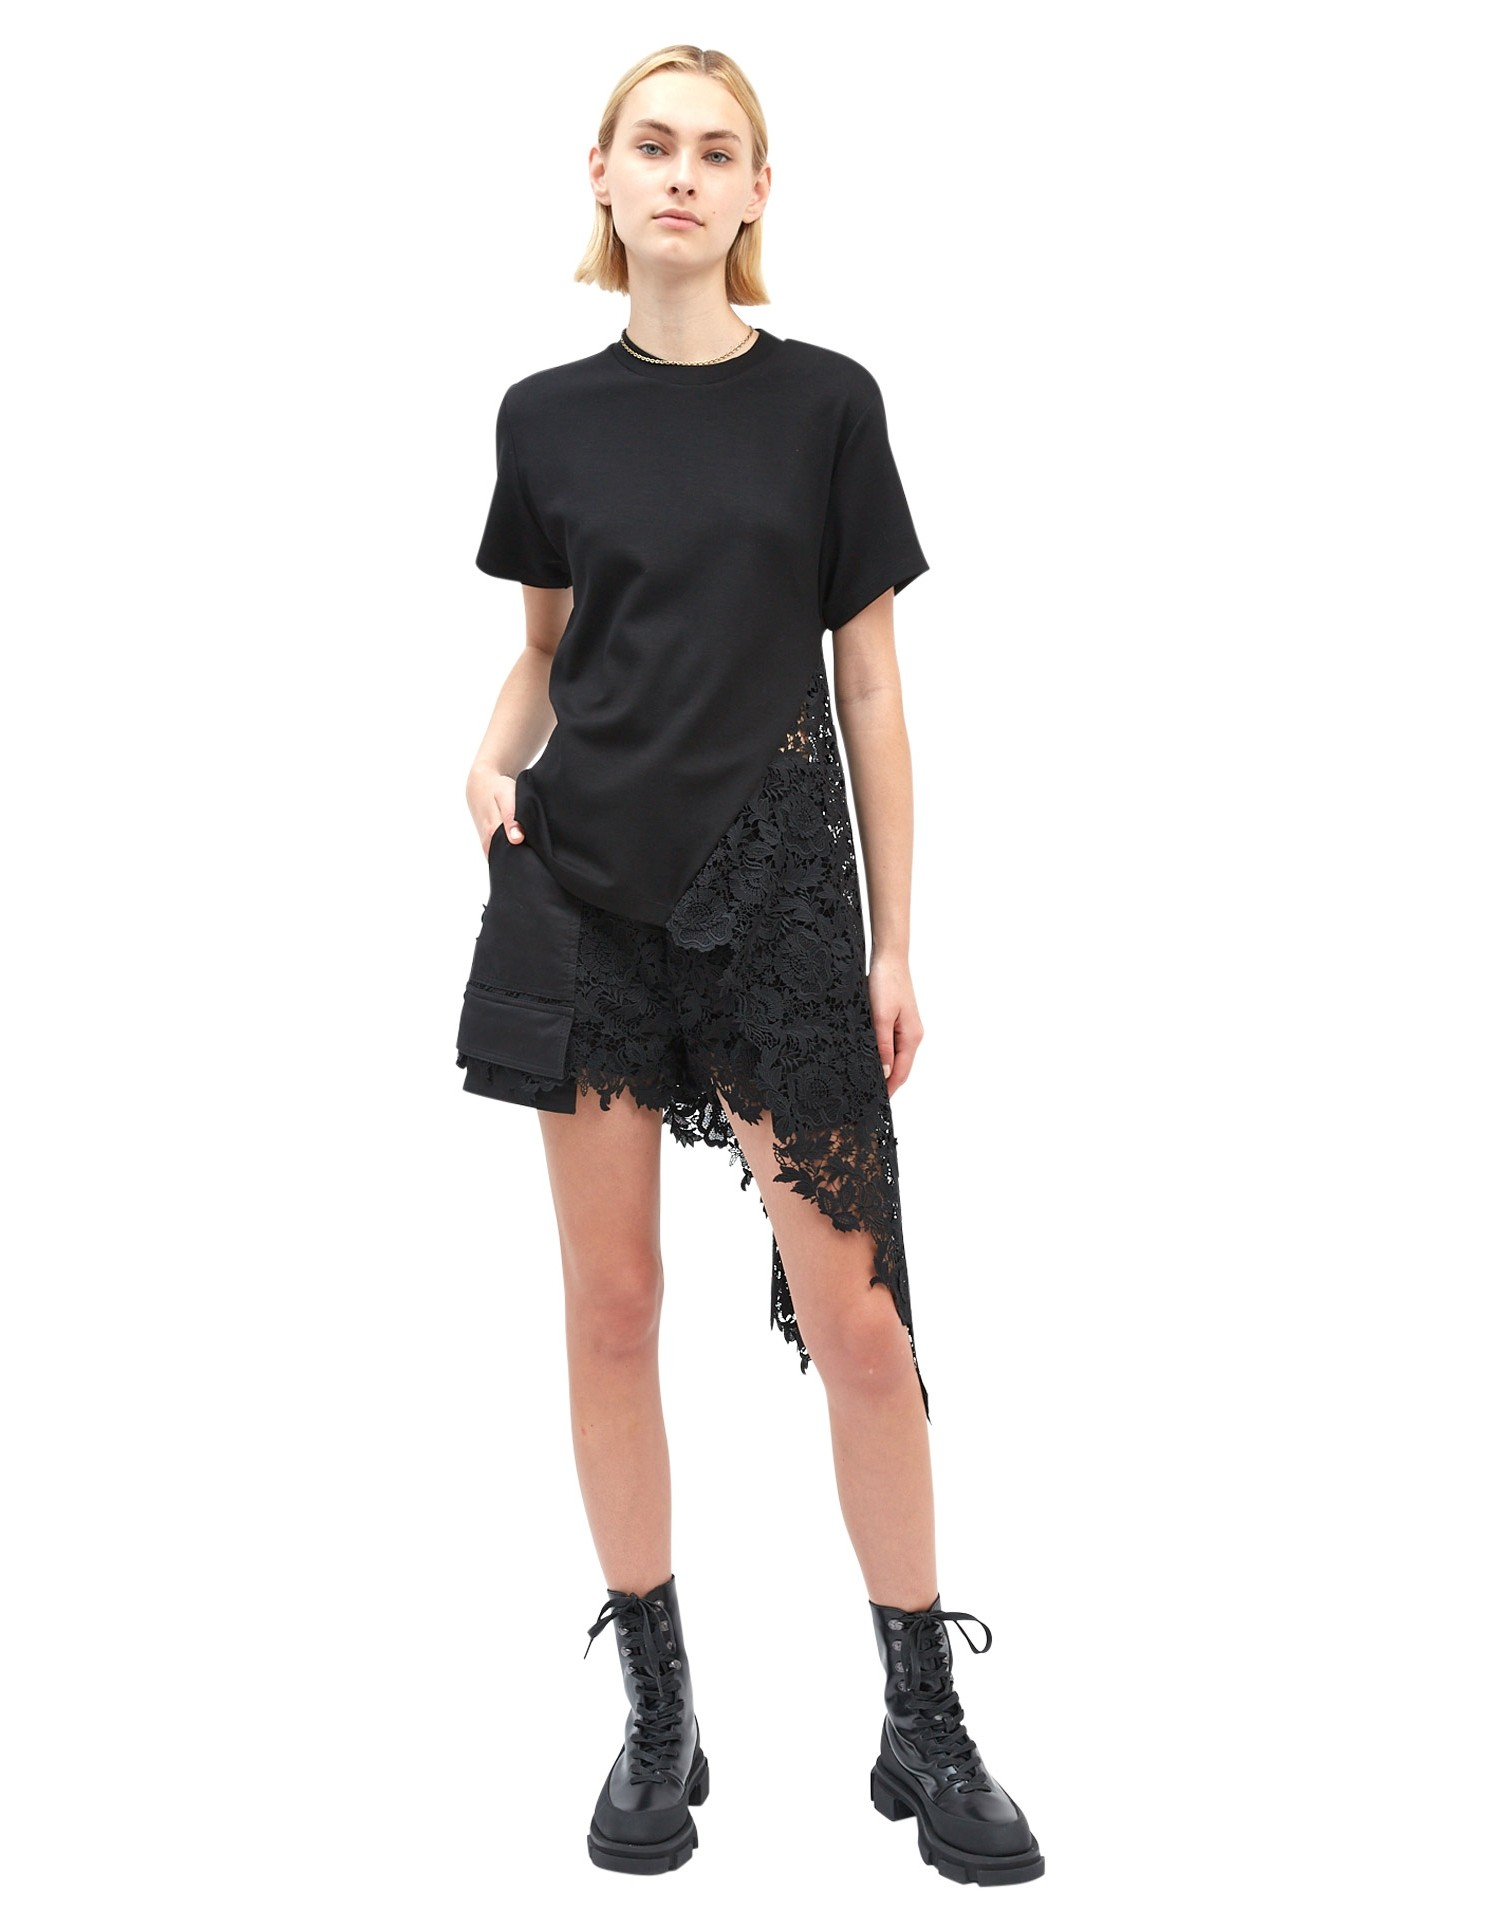 MONSE Lace Extended Pocket Short in Black on Model Full Front View